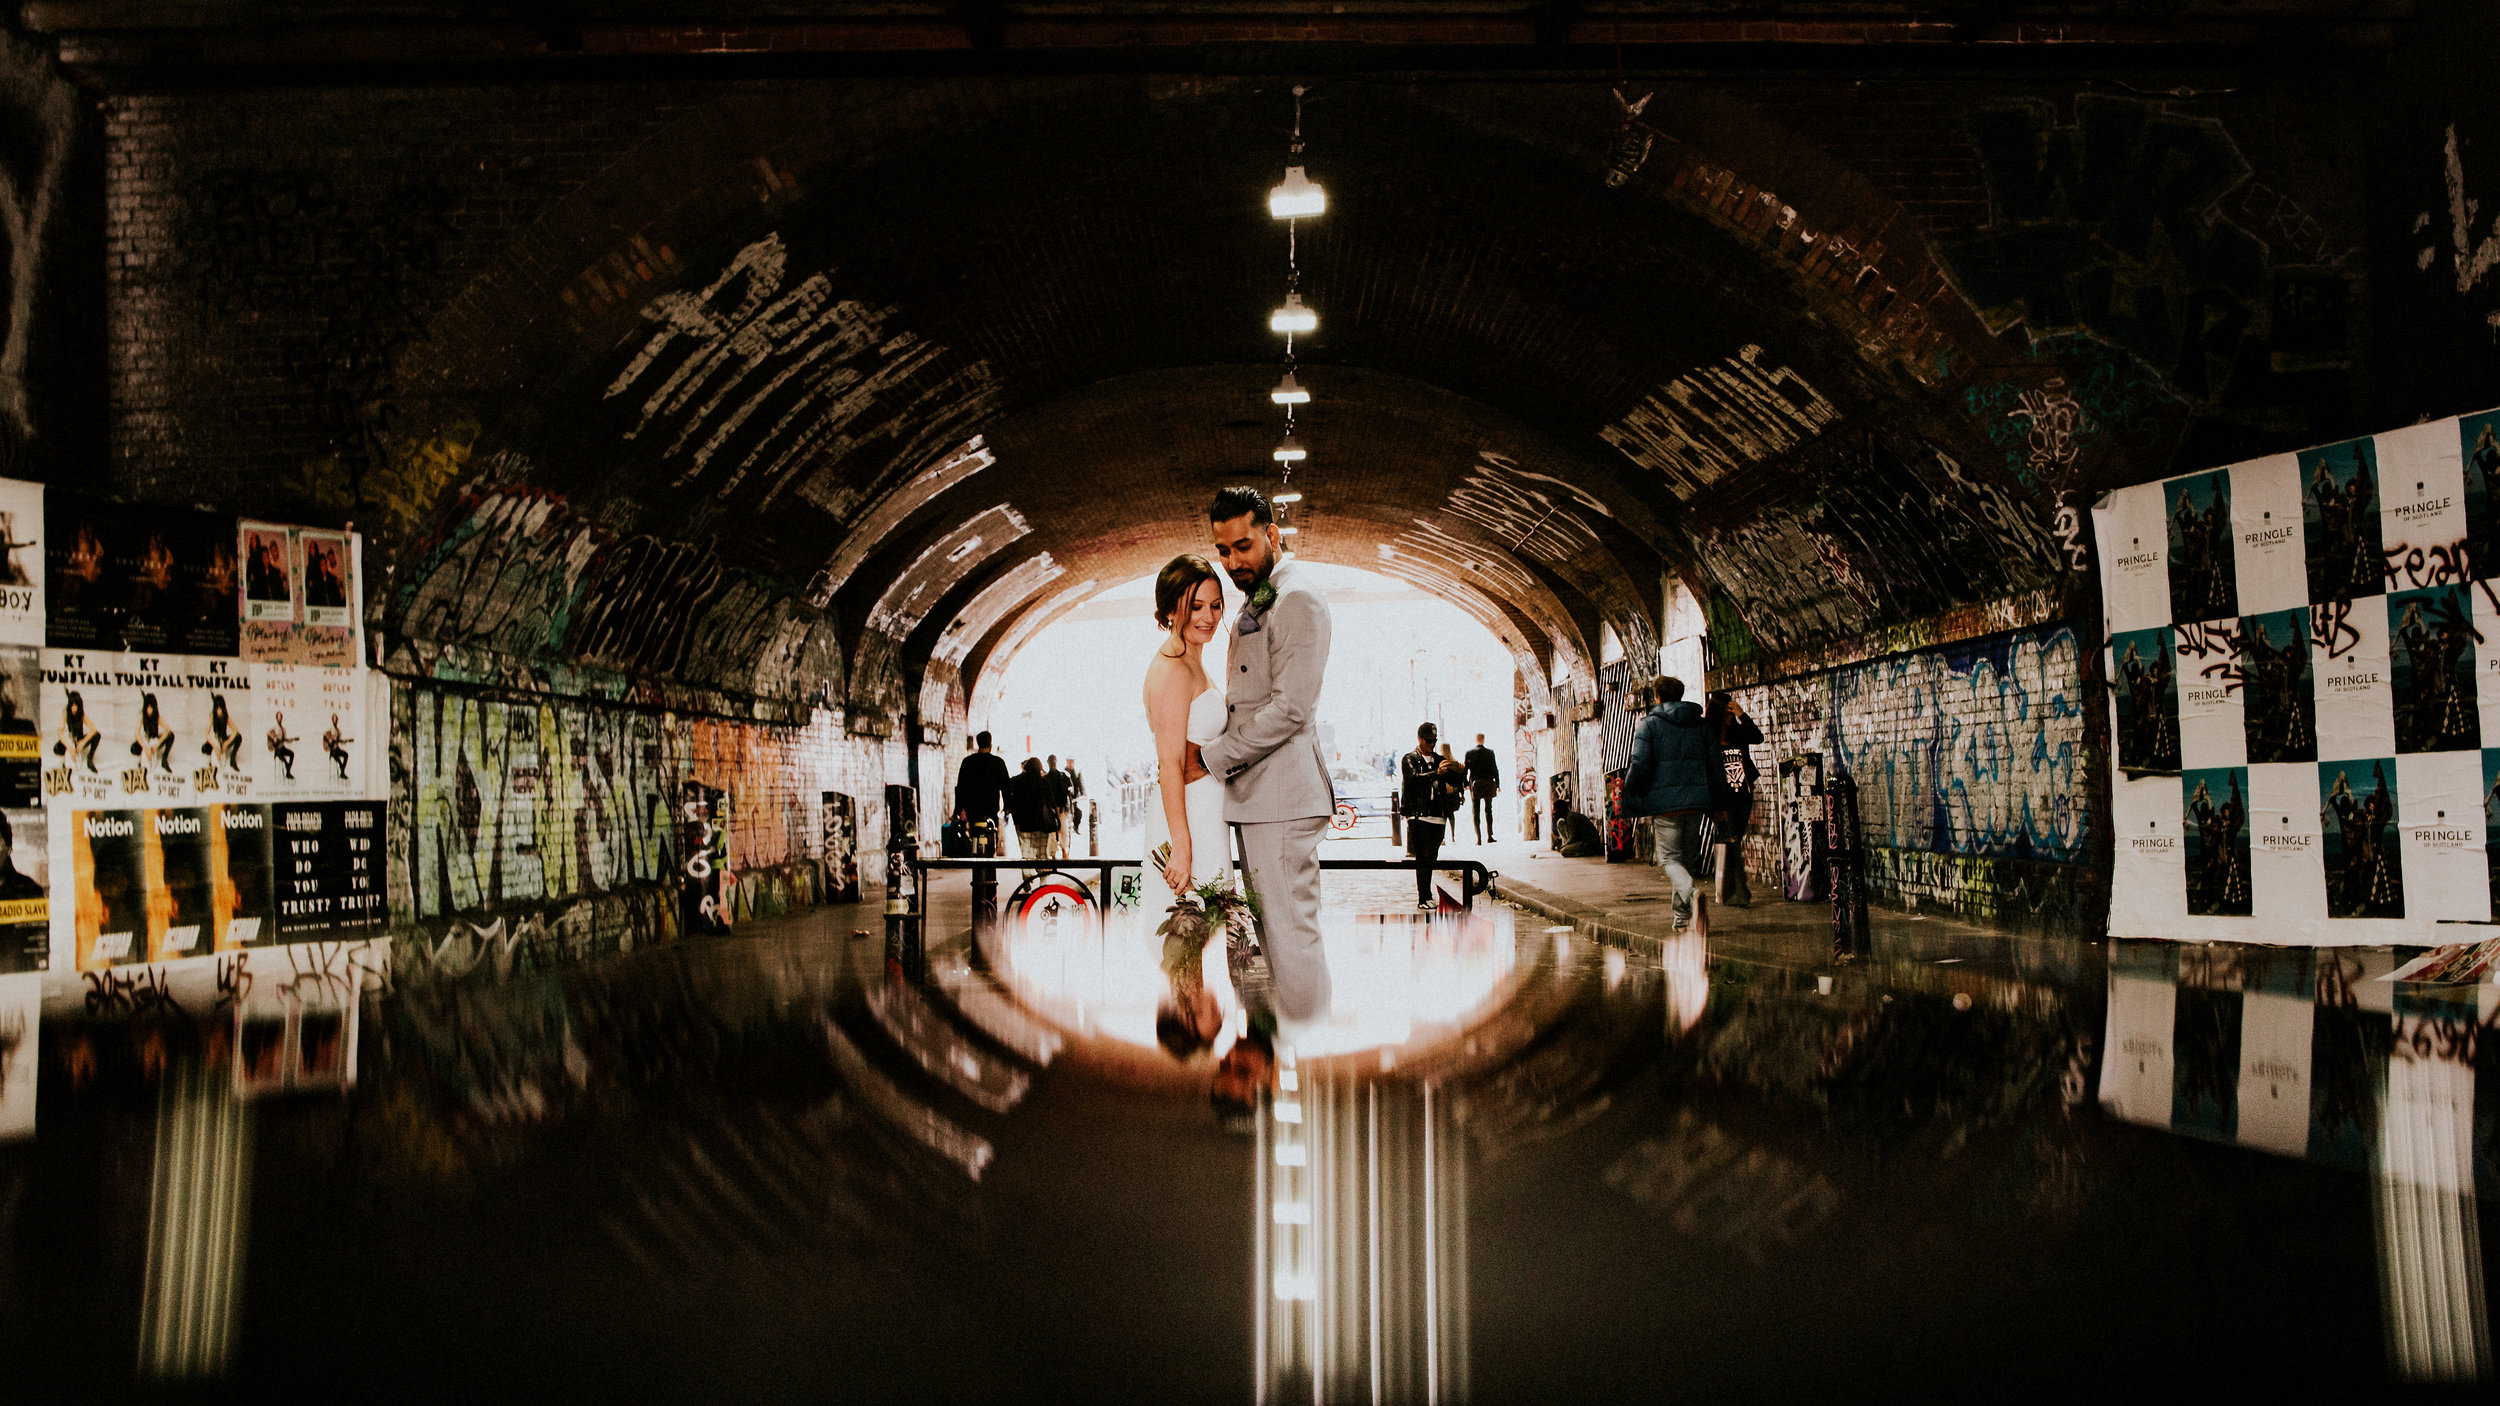 From the chandelier lit beauty of Marylebone Town Hall to the colourful graffiti'd streets of Shoreditch. This London alternative wedding is all about creativity, memories &  the love struck.